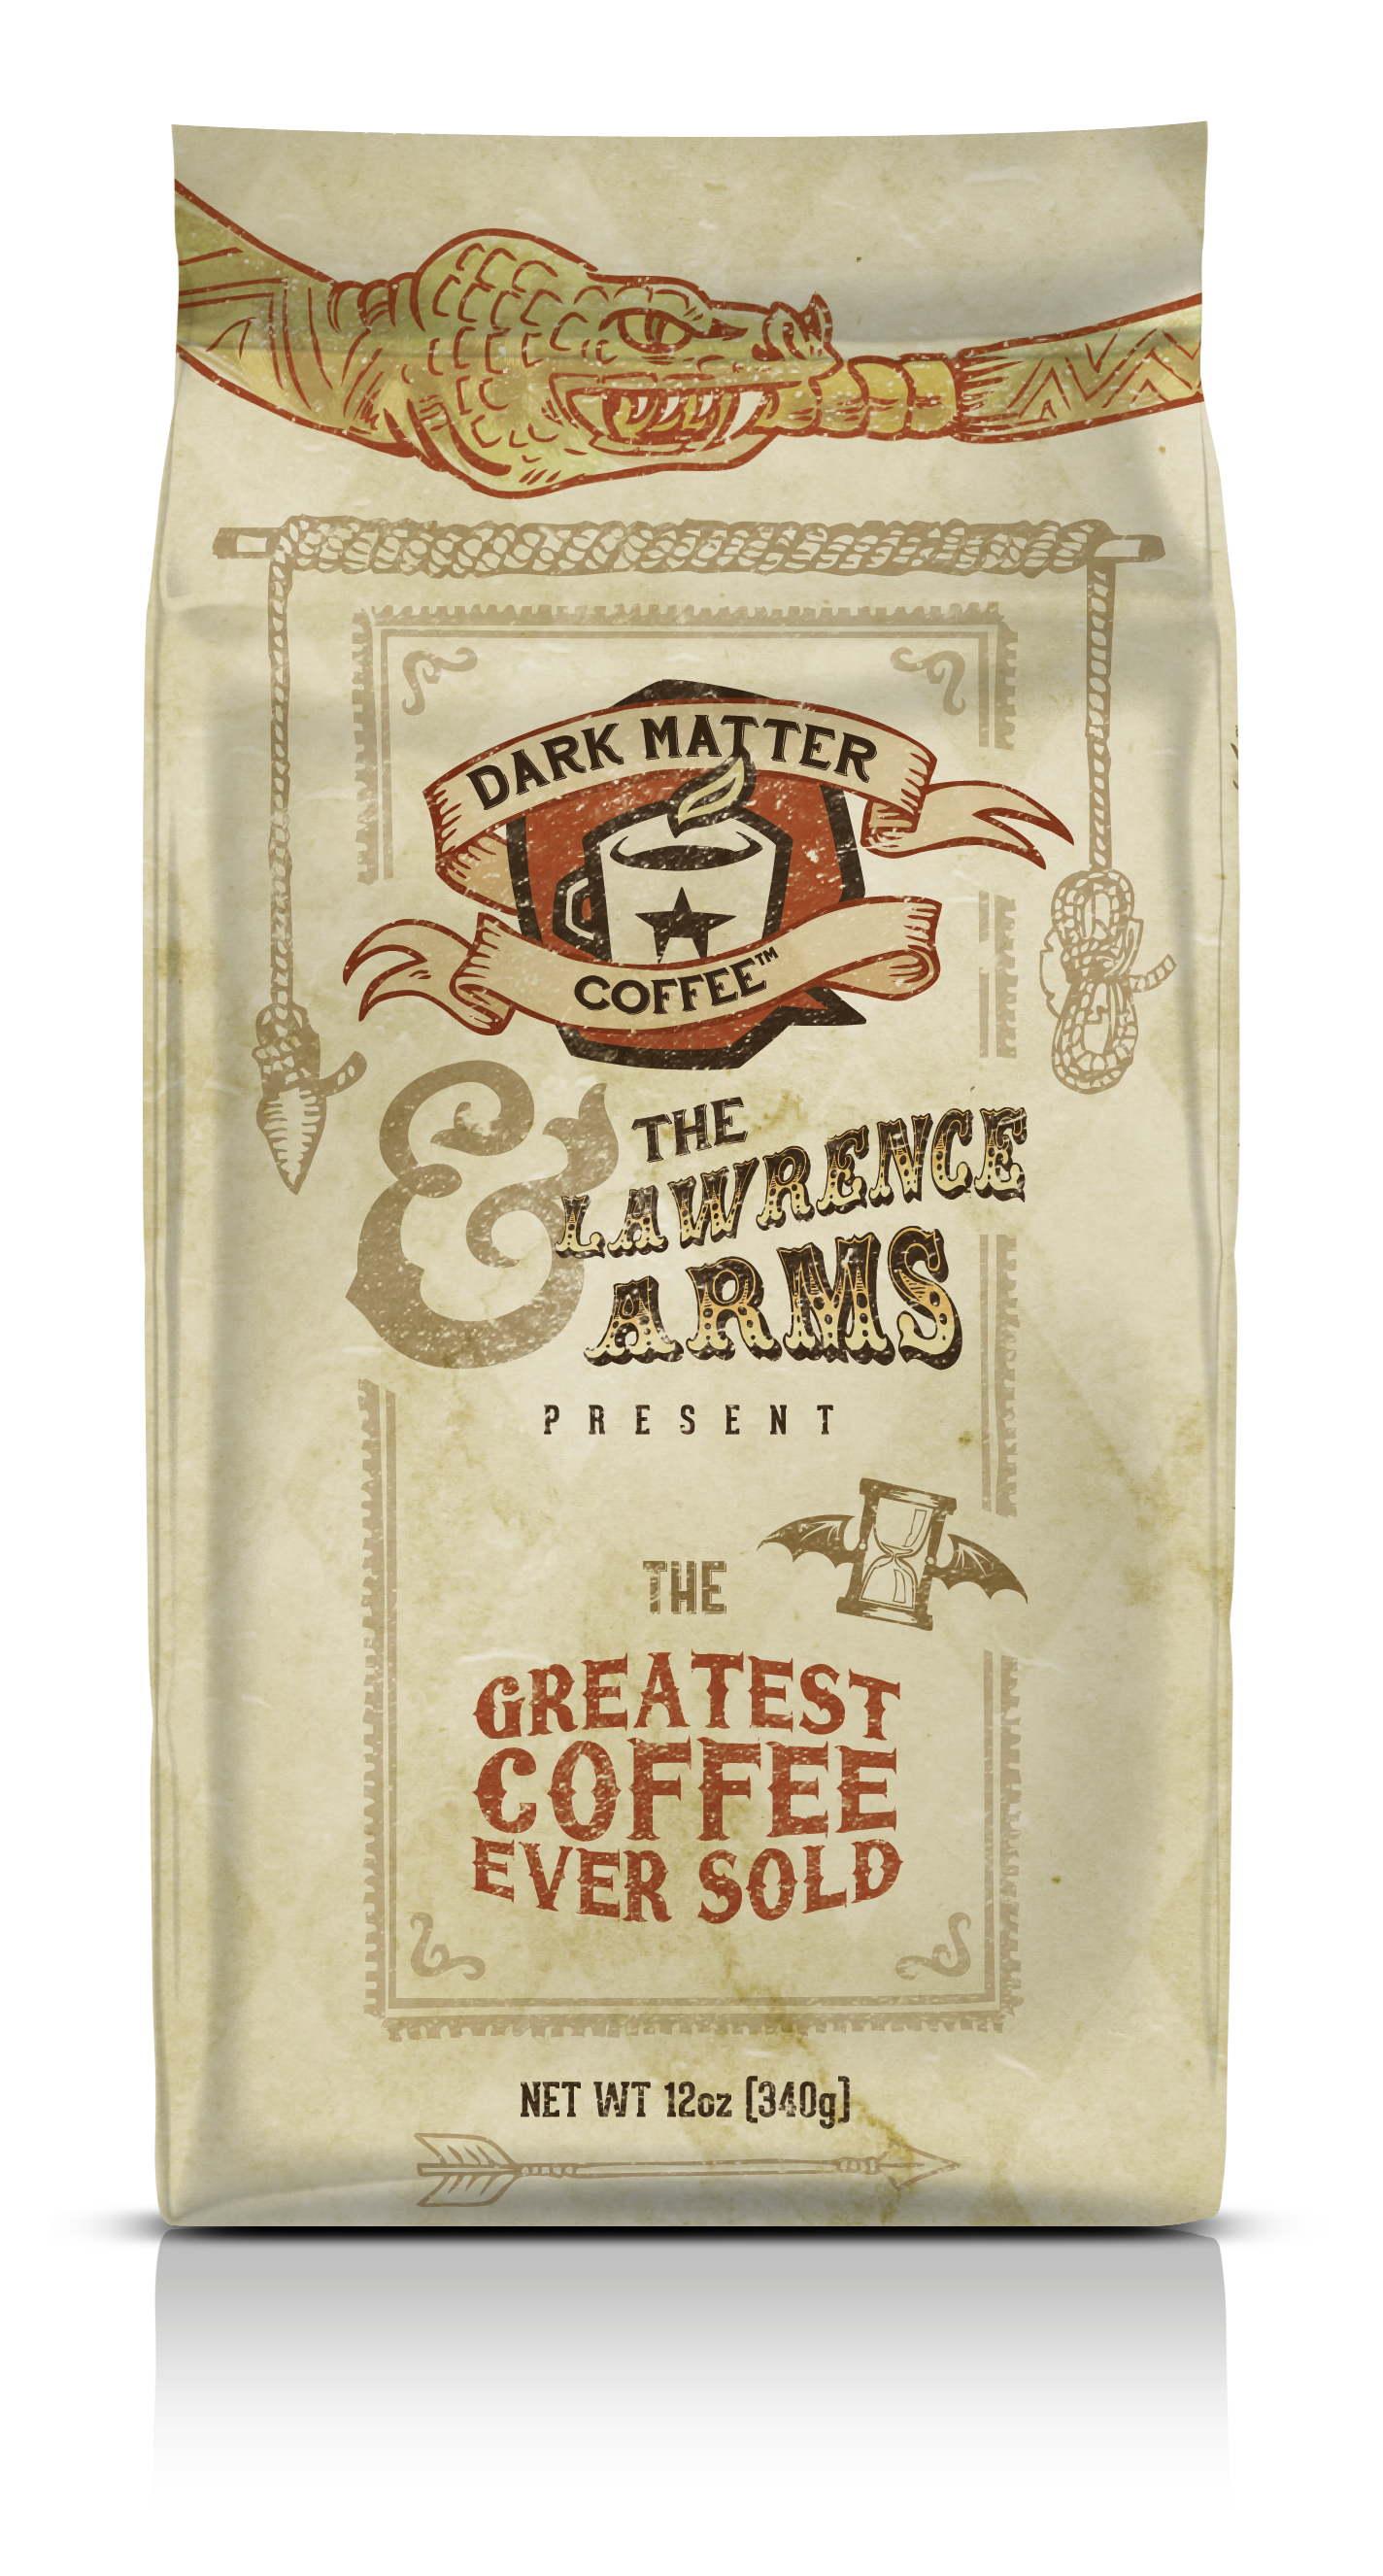 The Greatest Coffee Ever Sold